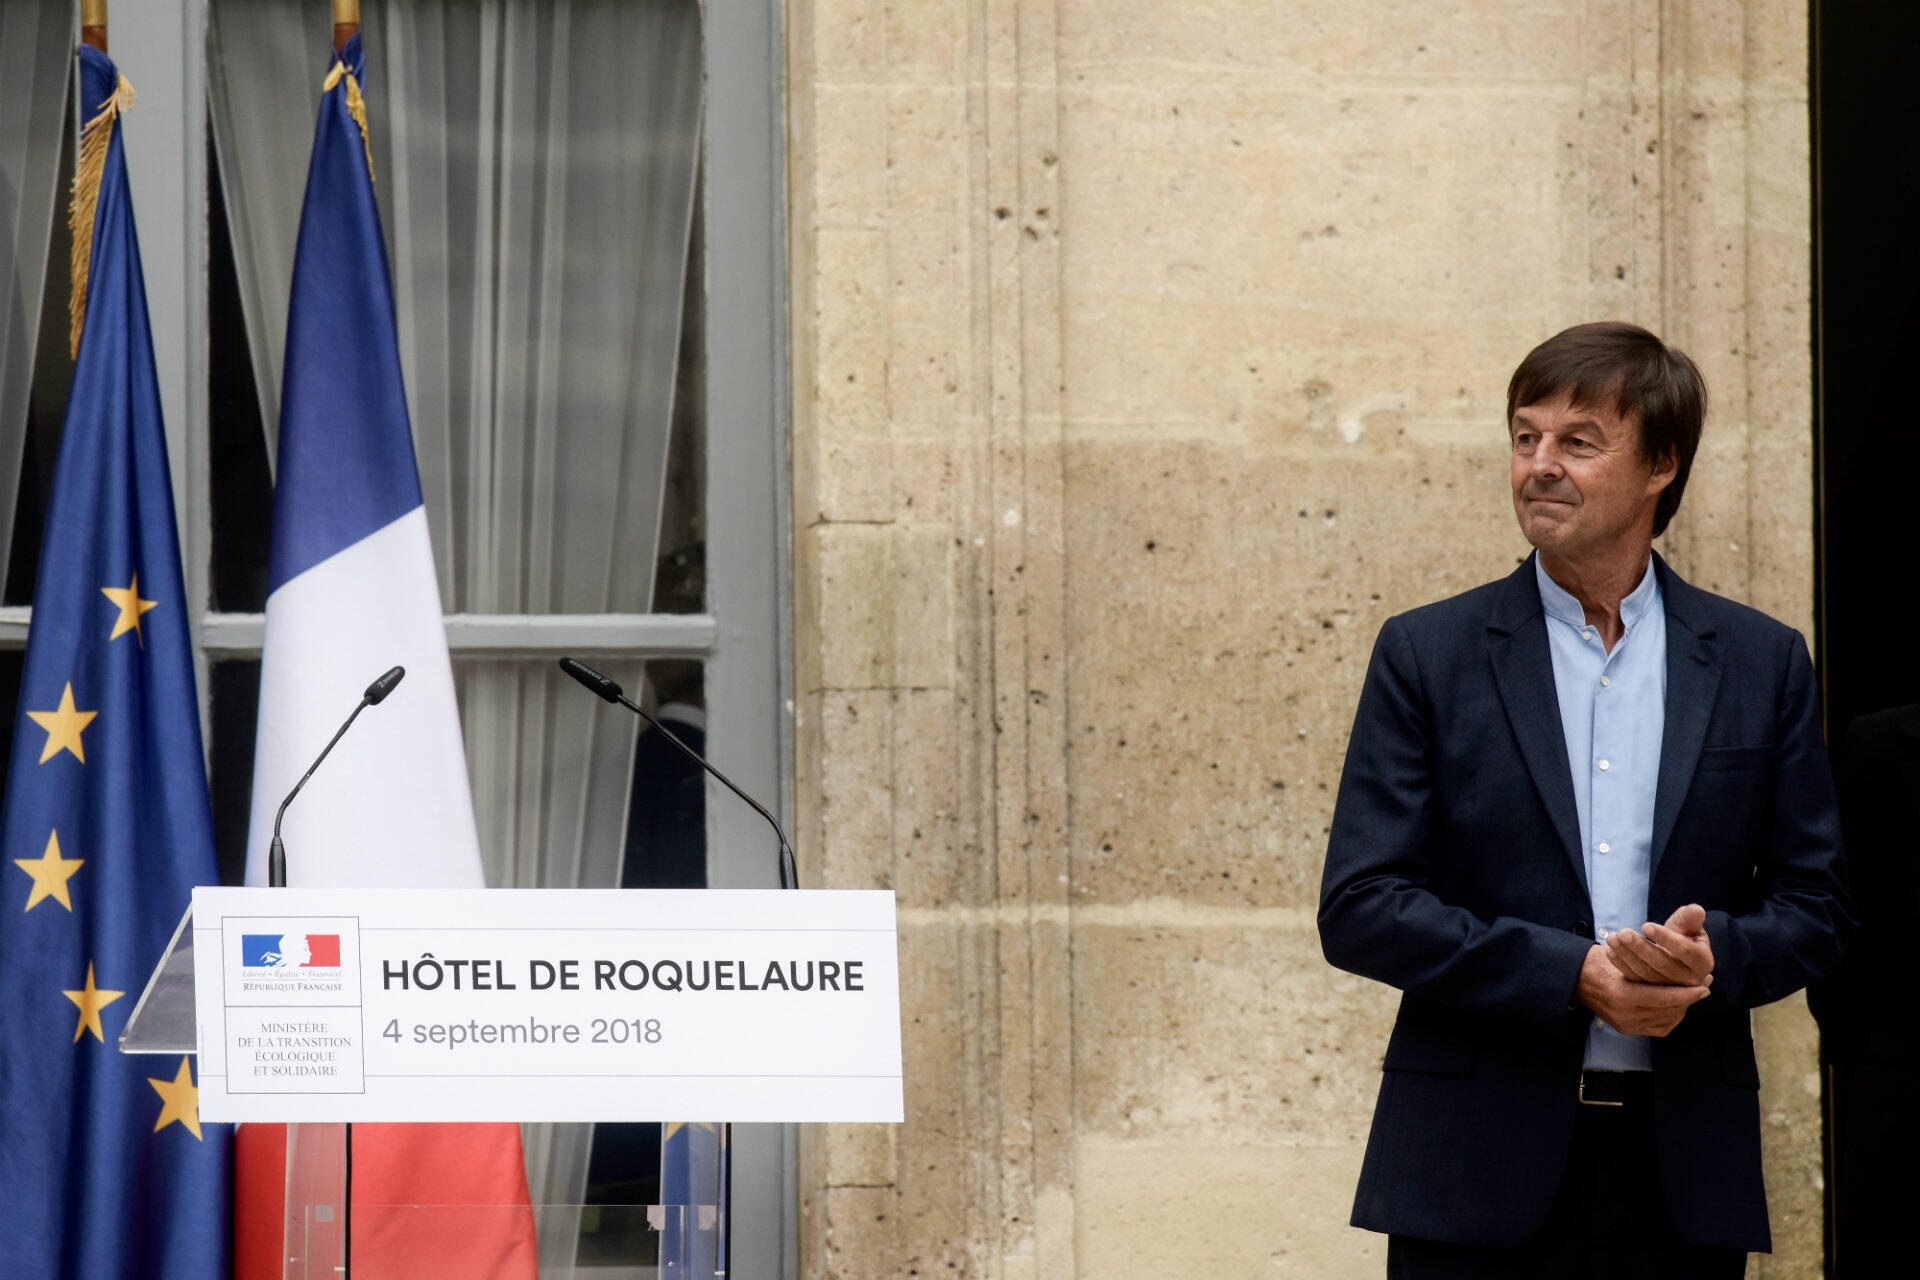 """Frustrated environment minister Nicolas Hulot resigned dramatically on live radio on August 28, taking the president by surprise and depriving the administration of its """"green"""" credentials and one of its most popular politicians. Hulot said he was frustrated by the """"small steps"""" taken to slow global warming. """"I don't want to create the illusion that we are facing up to it,"""" he said, adding that he hoped his decision would not be seen as """"an act of resignation but one of mobilisation""""."""